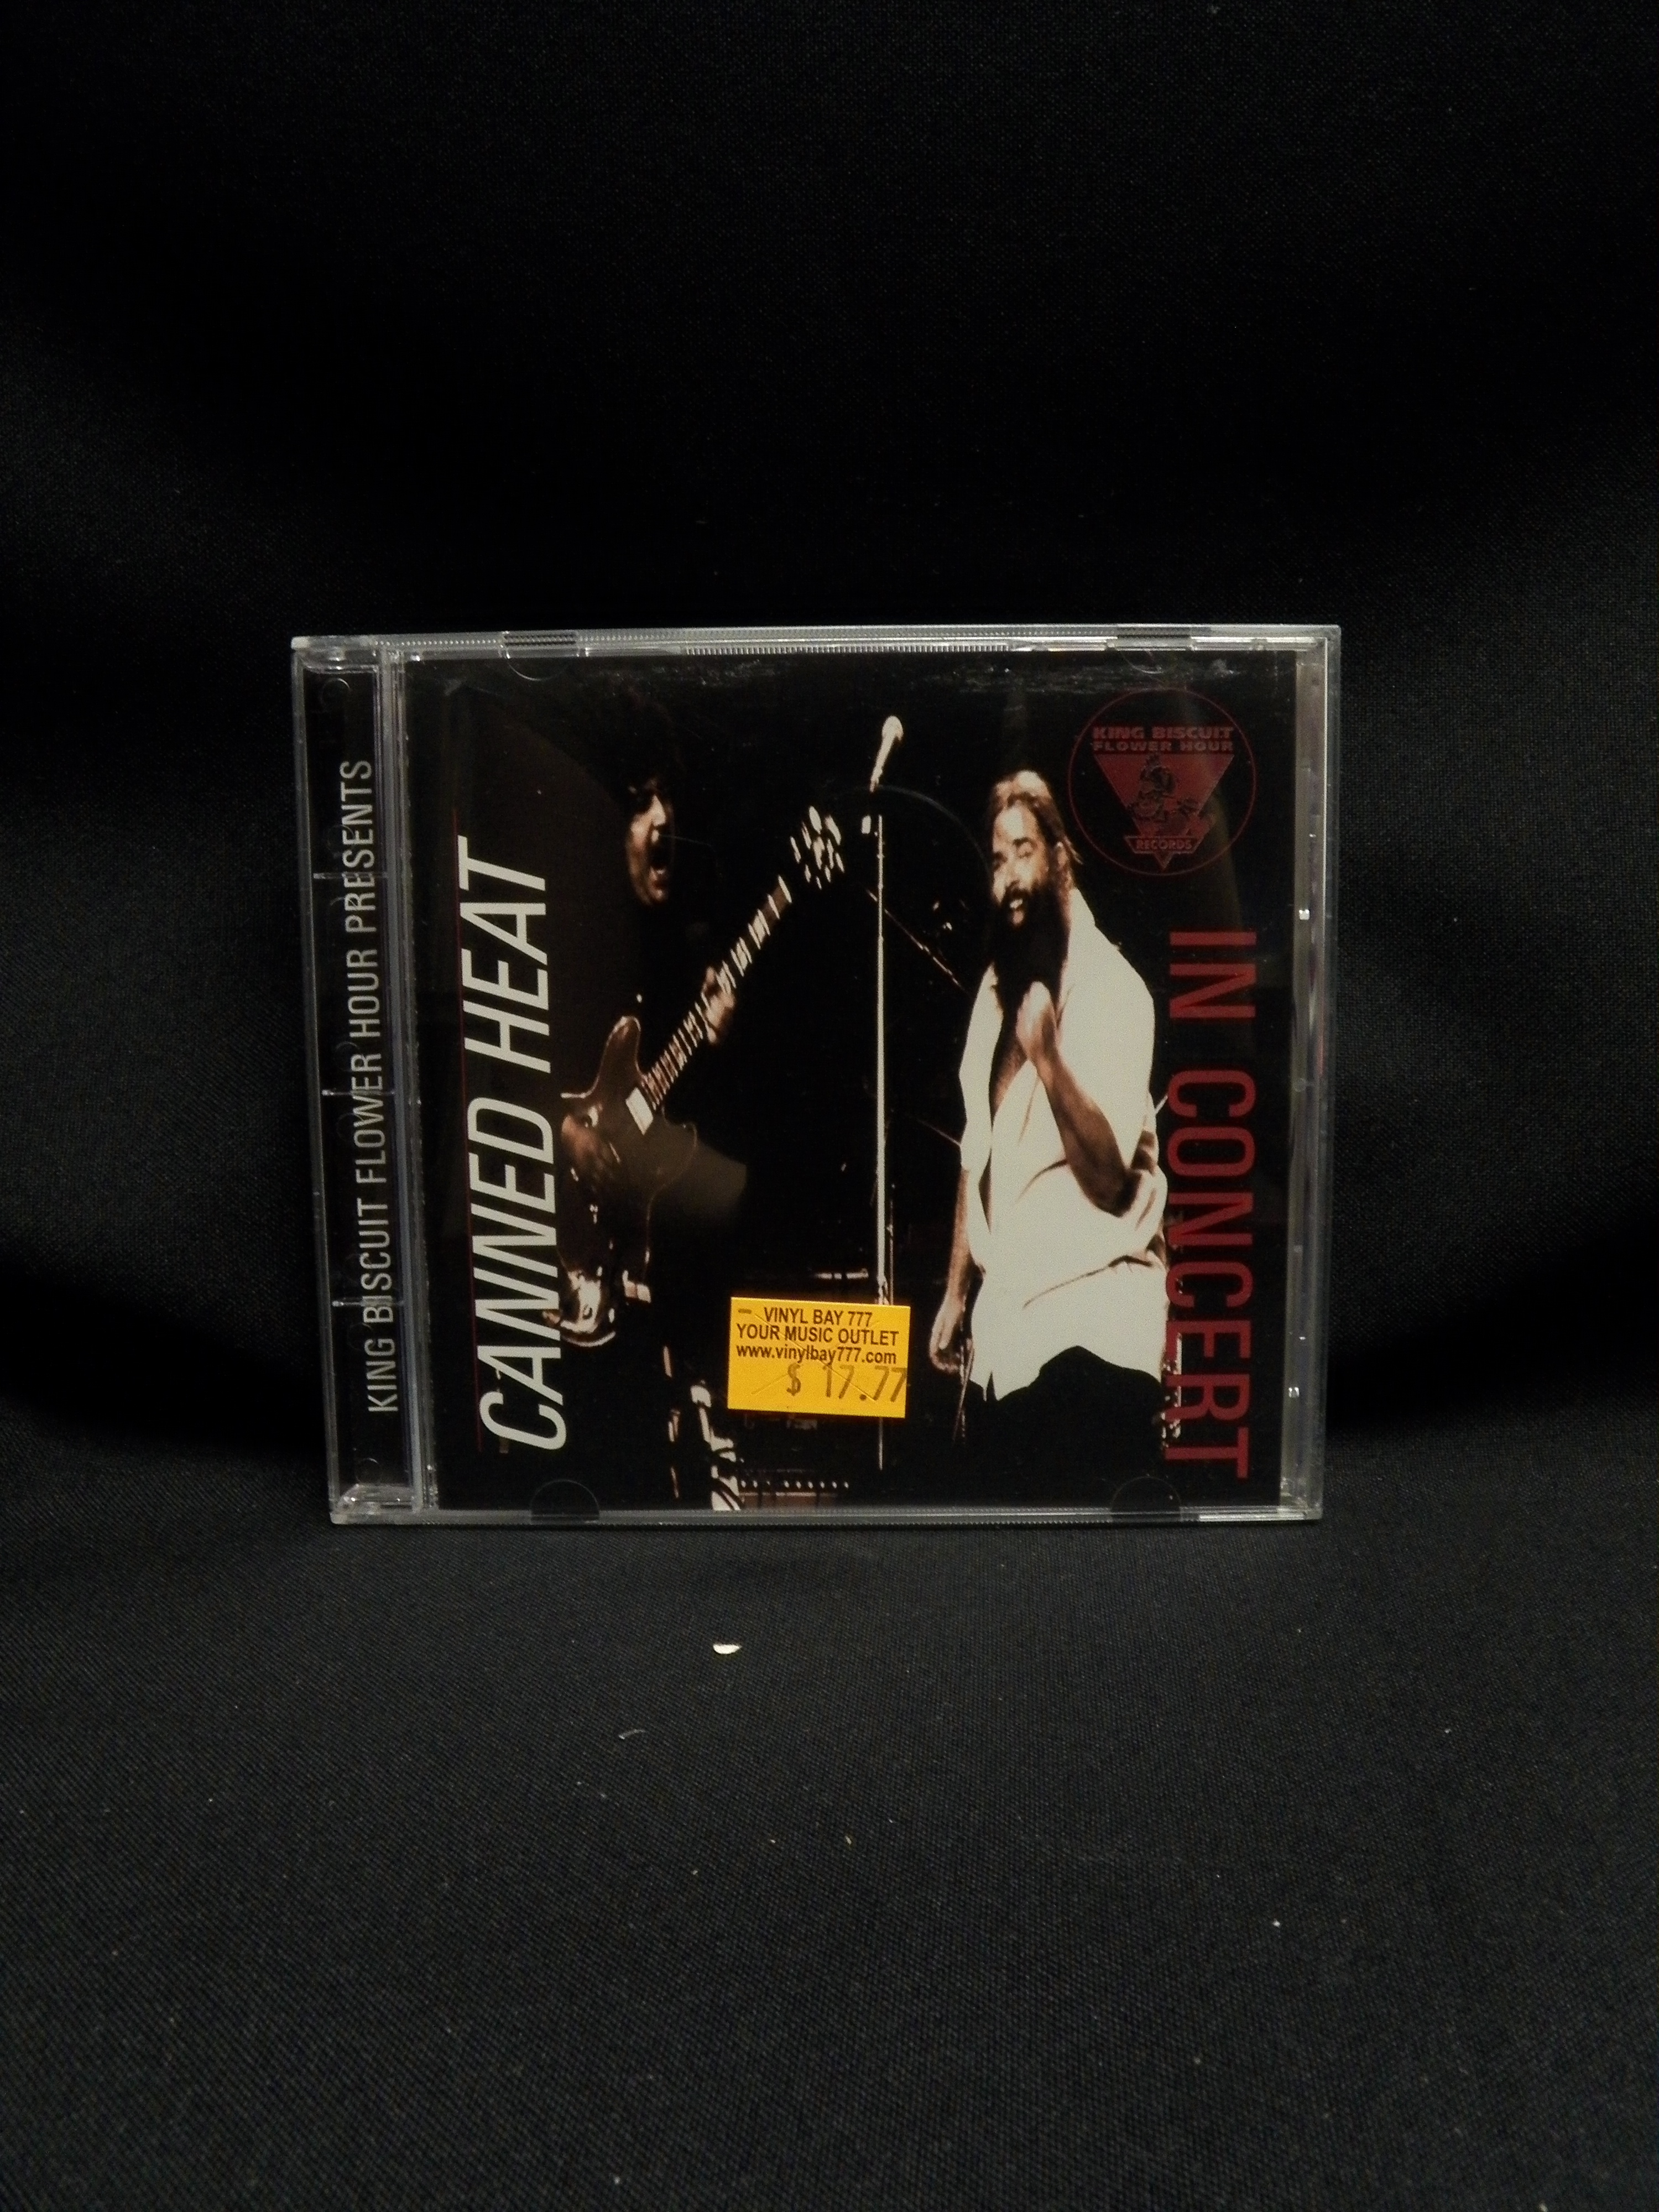 USED CD Canned Heat In Concert 1995 King Biscuit Flower